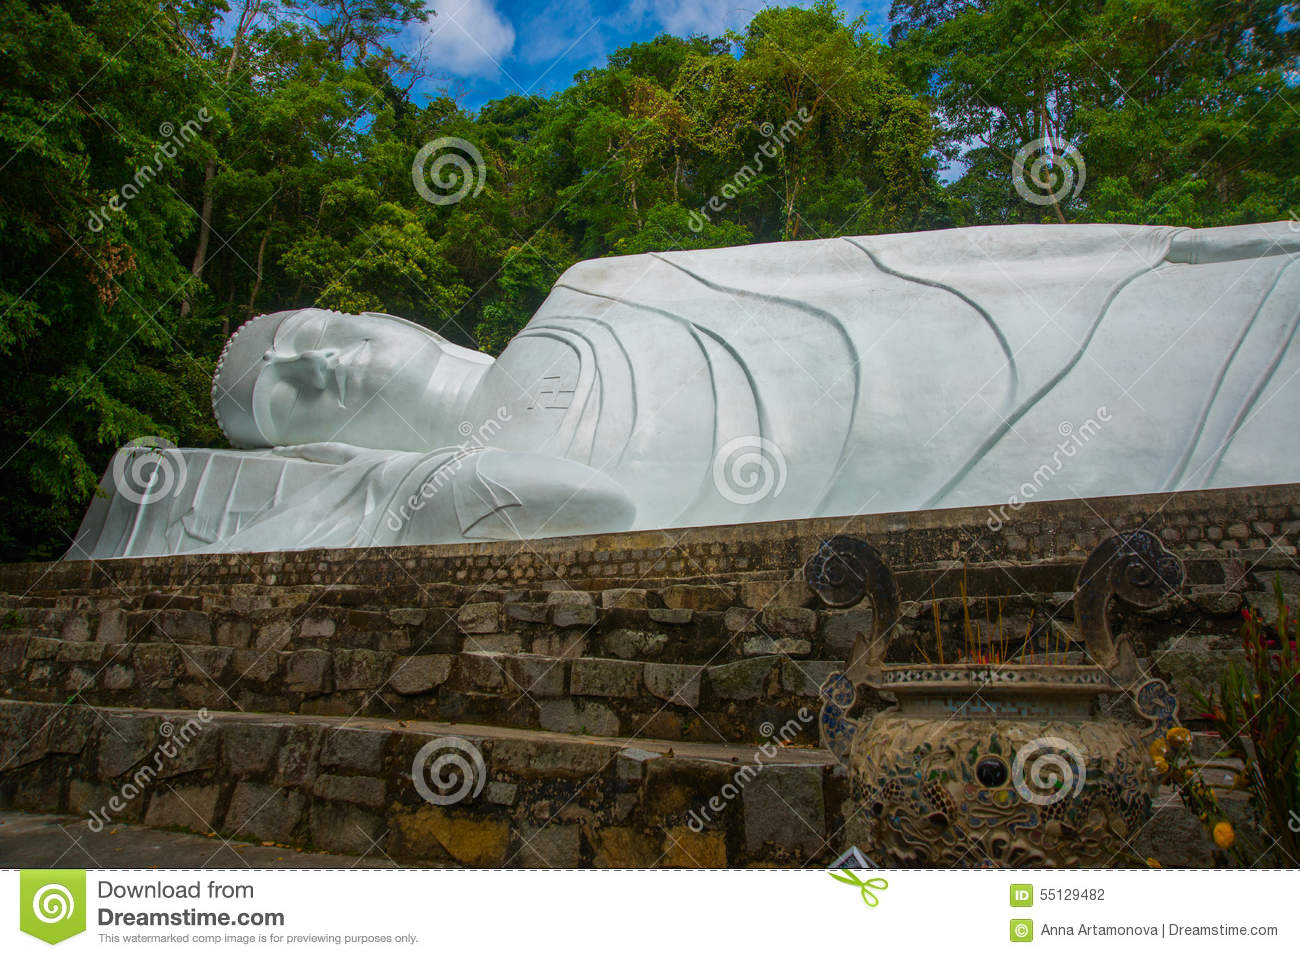 PHAN THIET, VIETNAM.The biggest statue of sleeping Buddha in Vietnam is at Linh Son Truong Tho Pagoda, March 6, 2013, near Phan Th